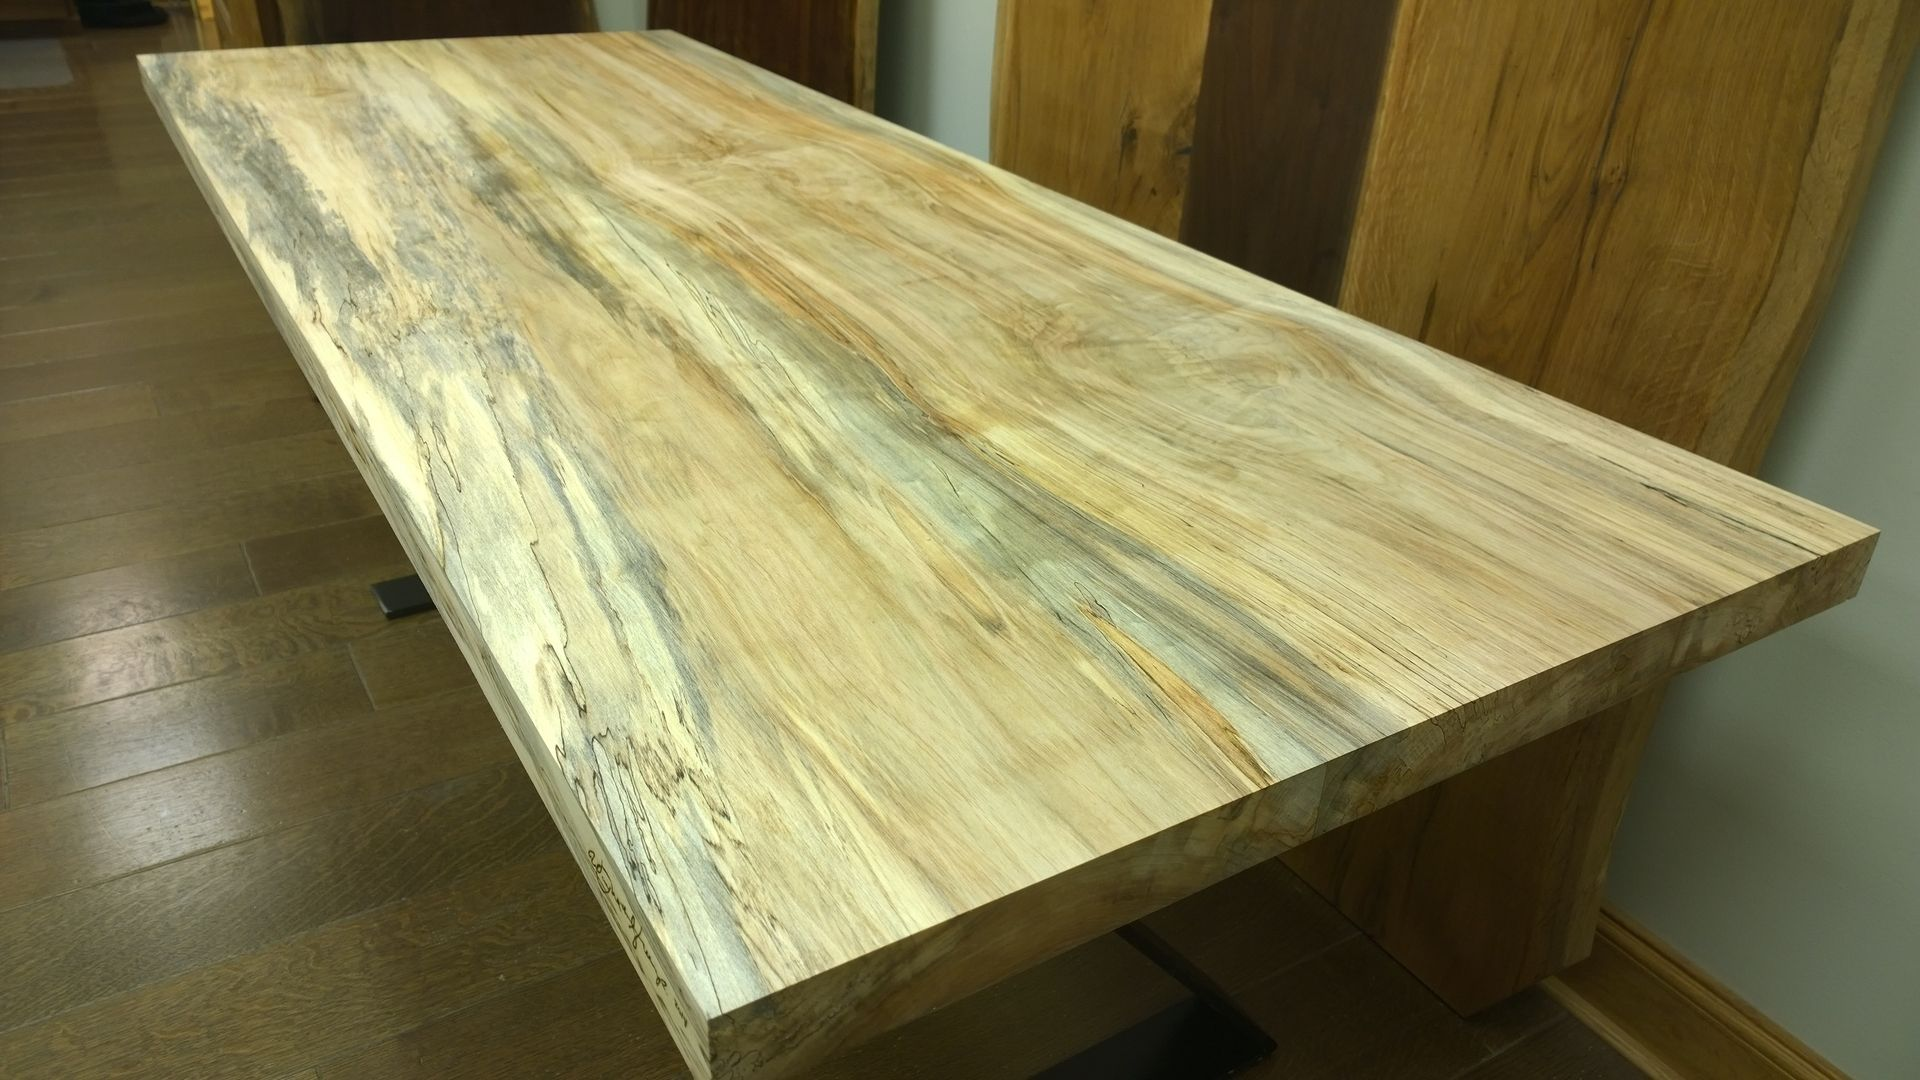 Handmade Spalted Soft Maple Wooden Desk Top By Stump